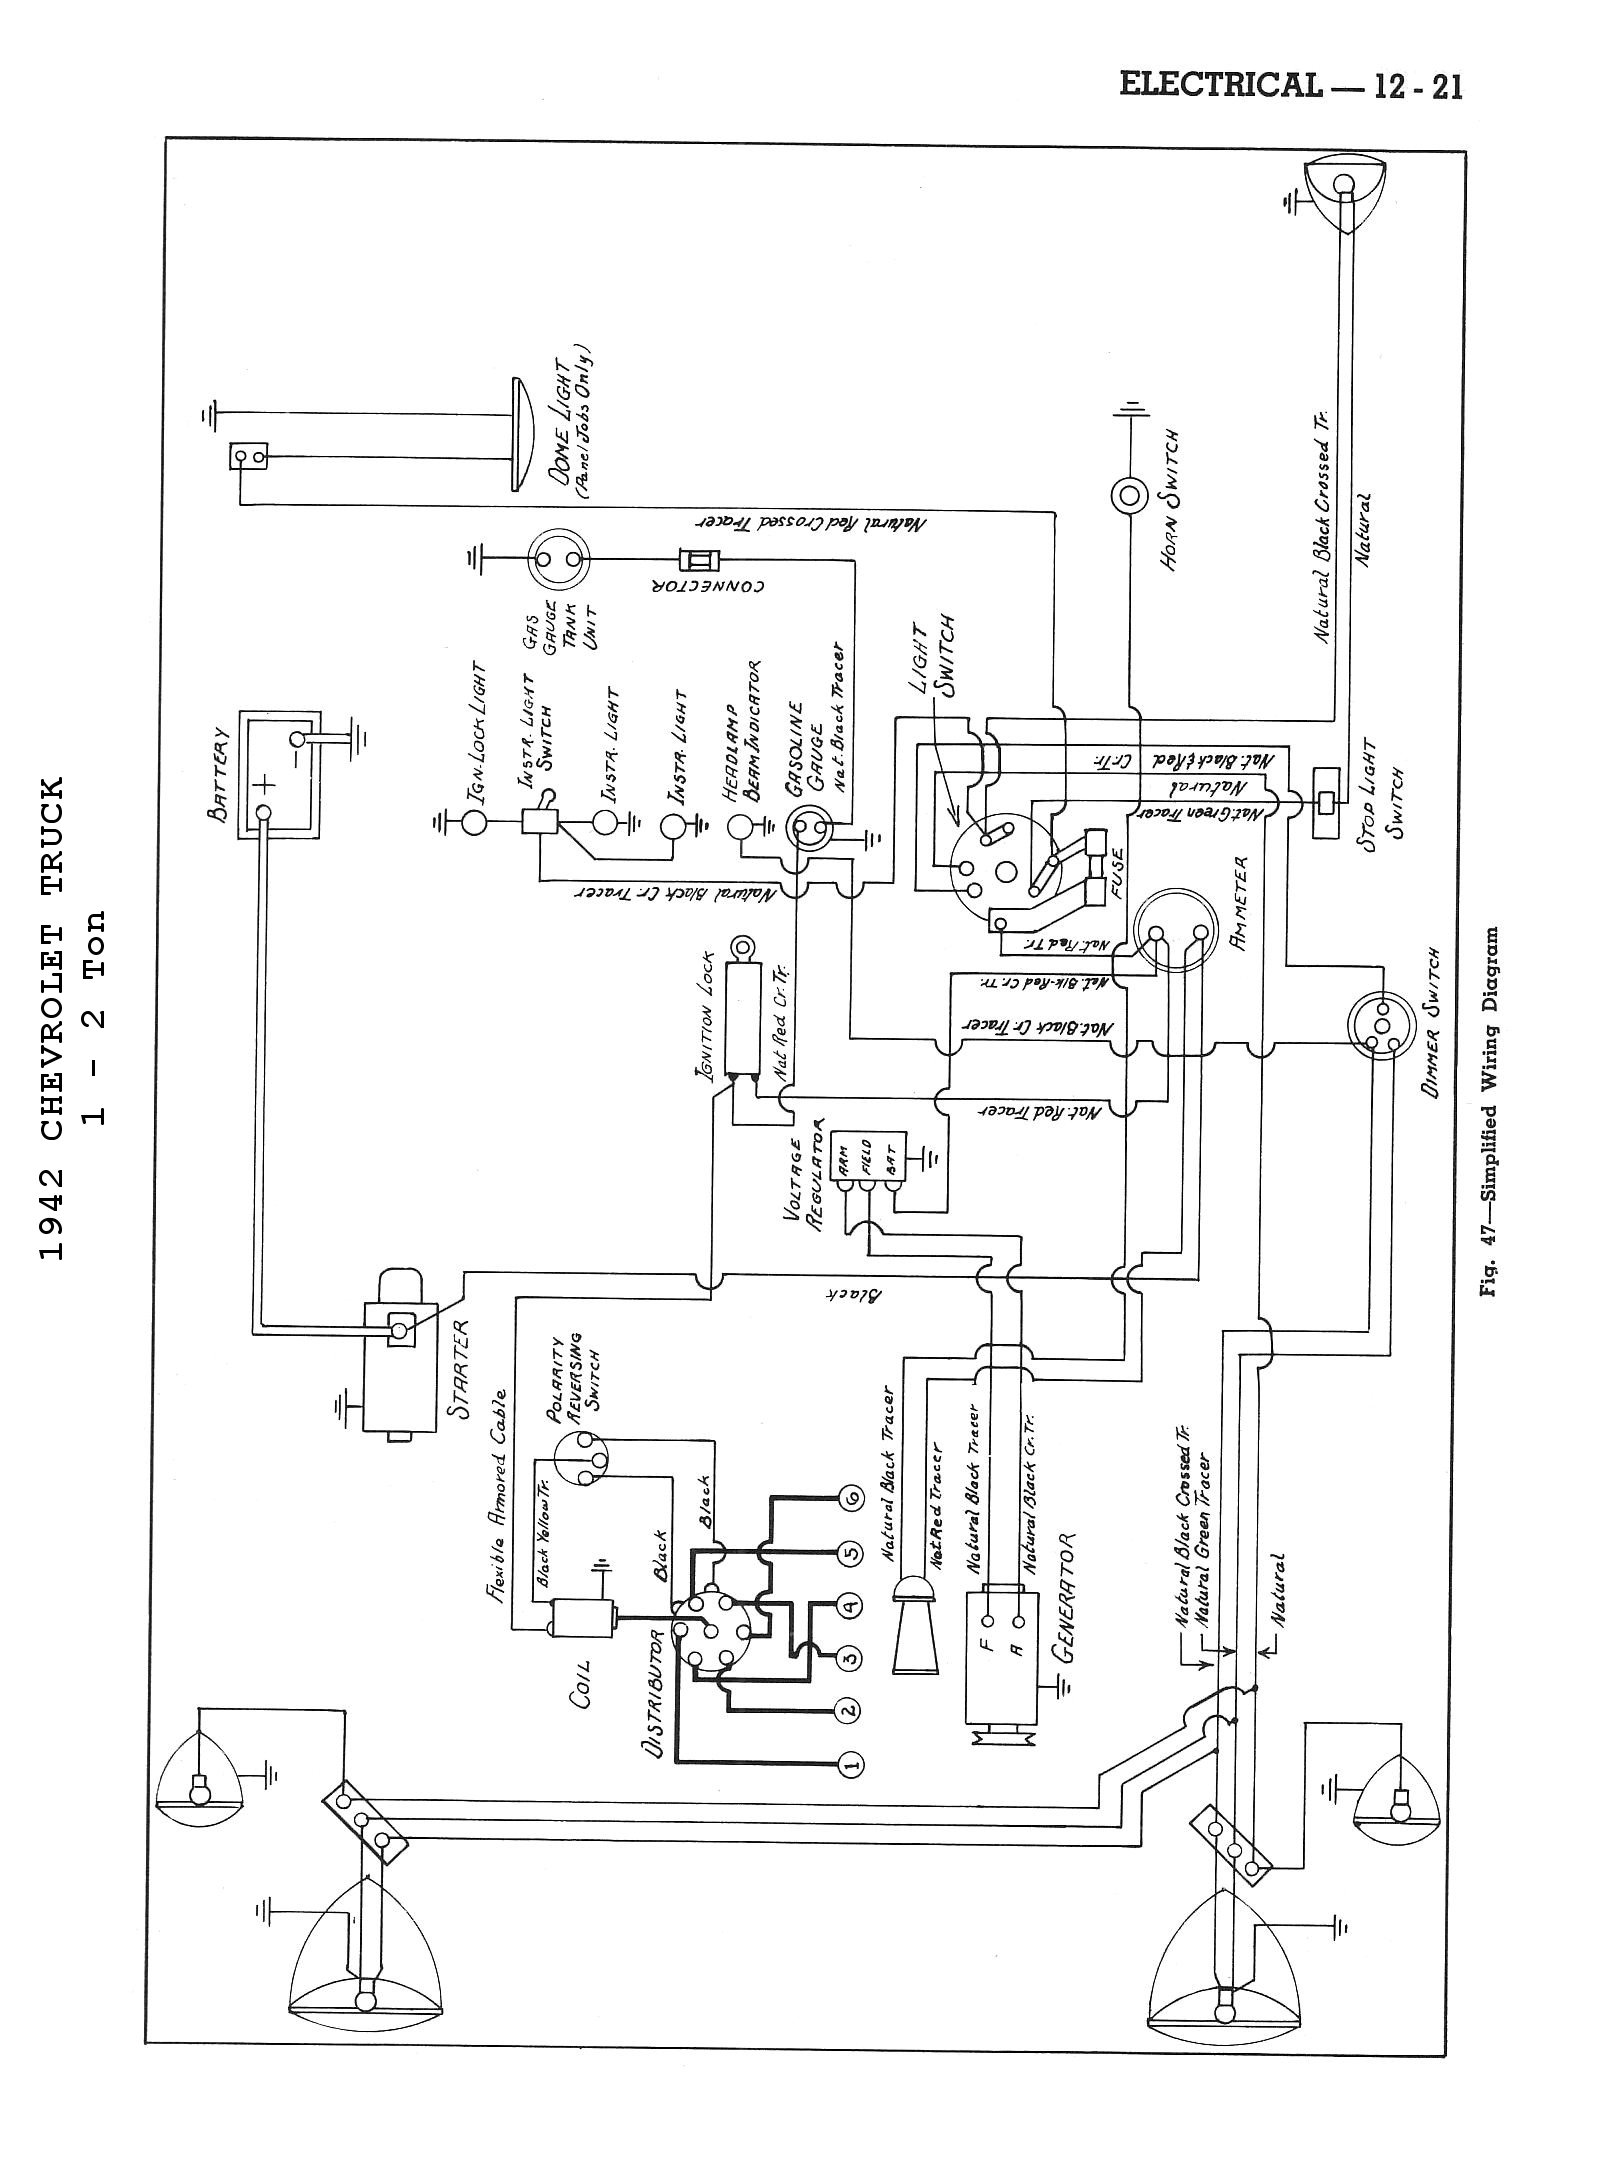 42cm4x2t1221 chevy wiring diagrams Basic 12 Volt Wiring Diagrams at bayanpartner.co